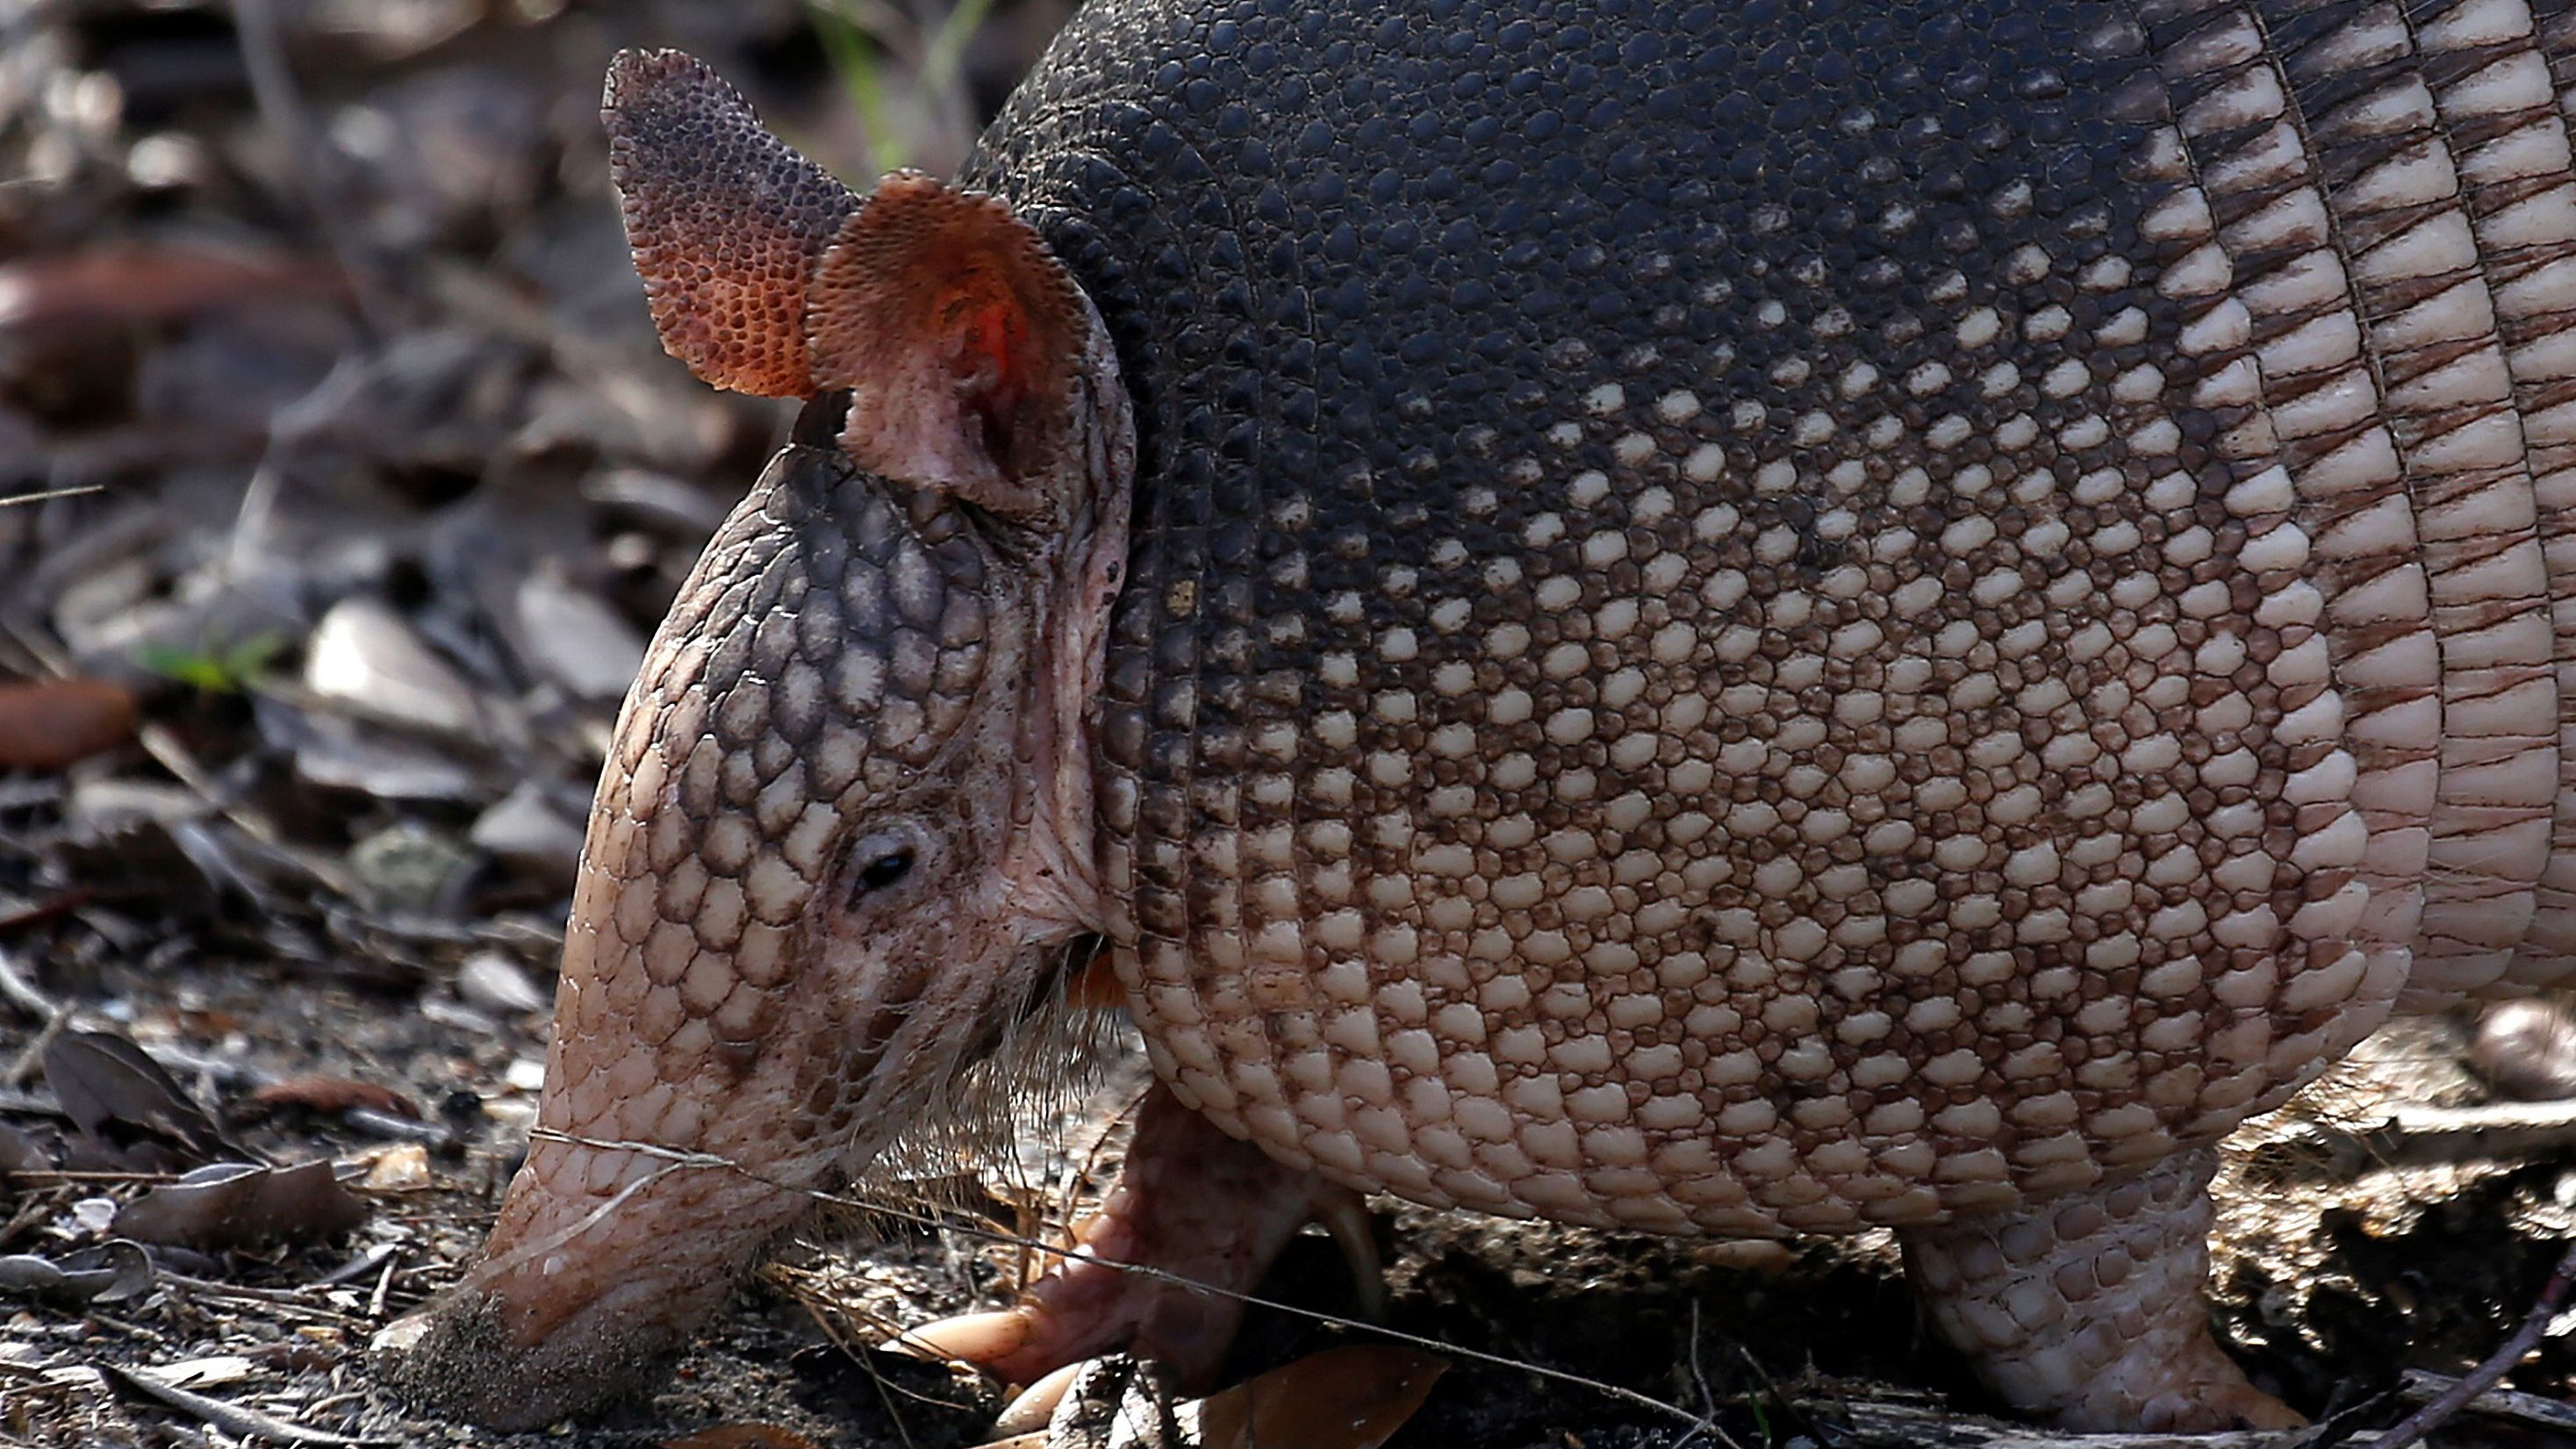 An armadillo forages for food on the ground in St Augustine